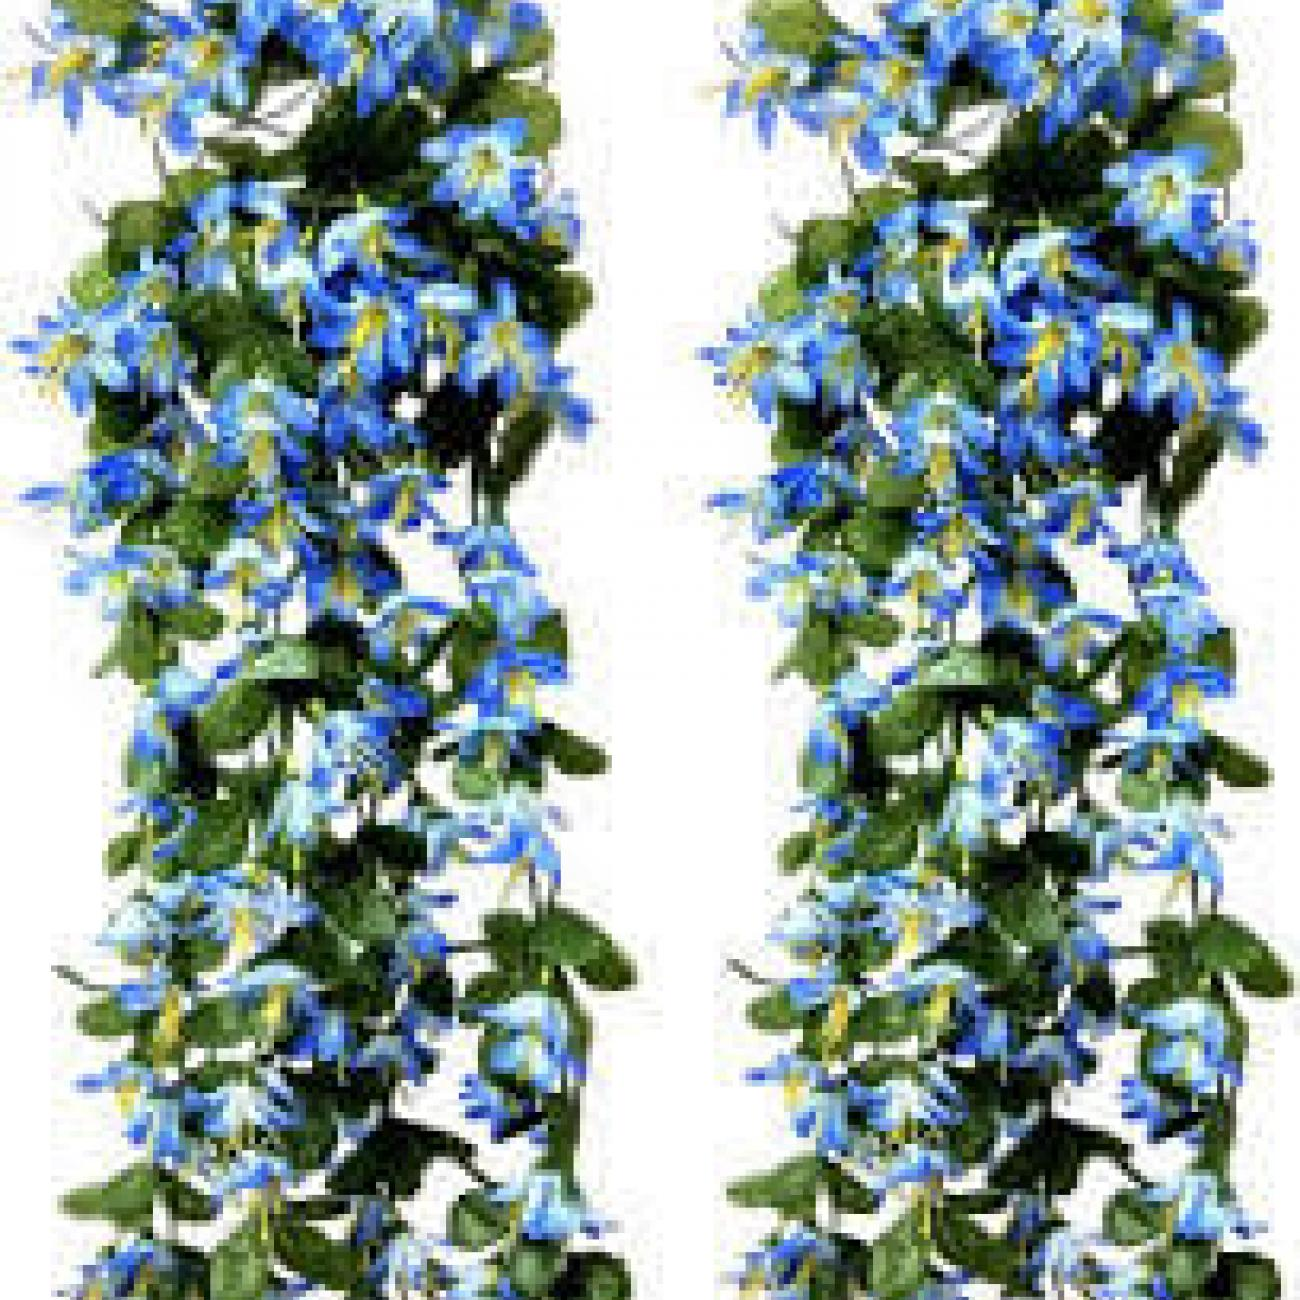 Artificial Flower Creepers